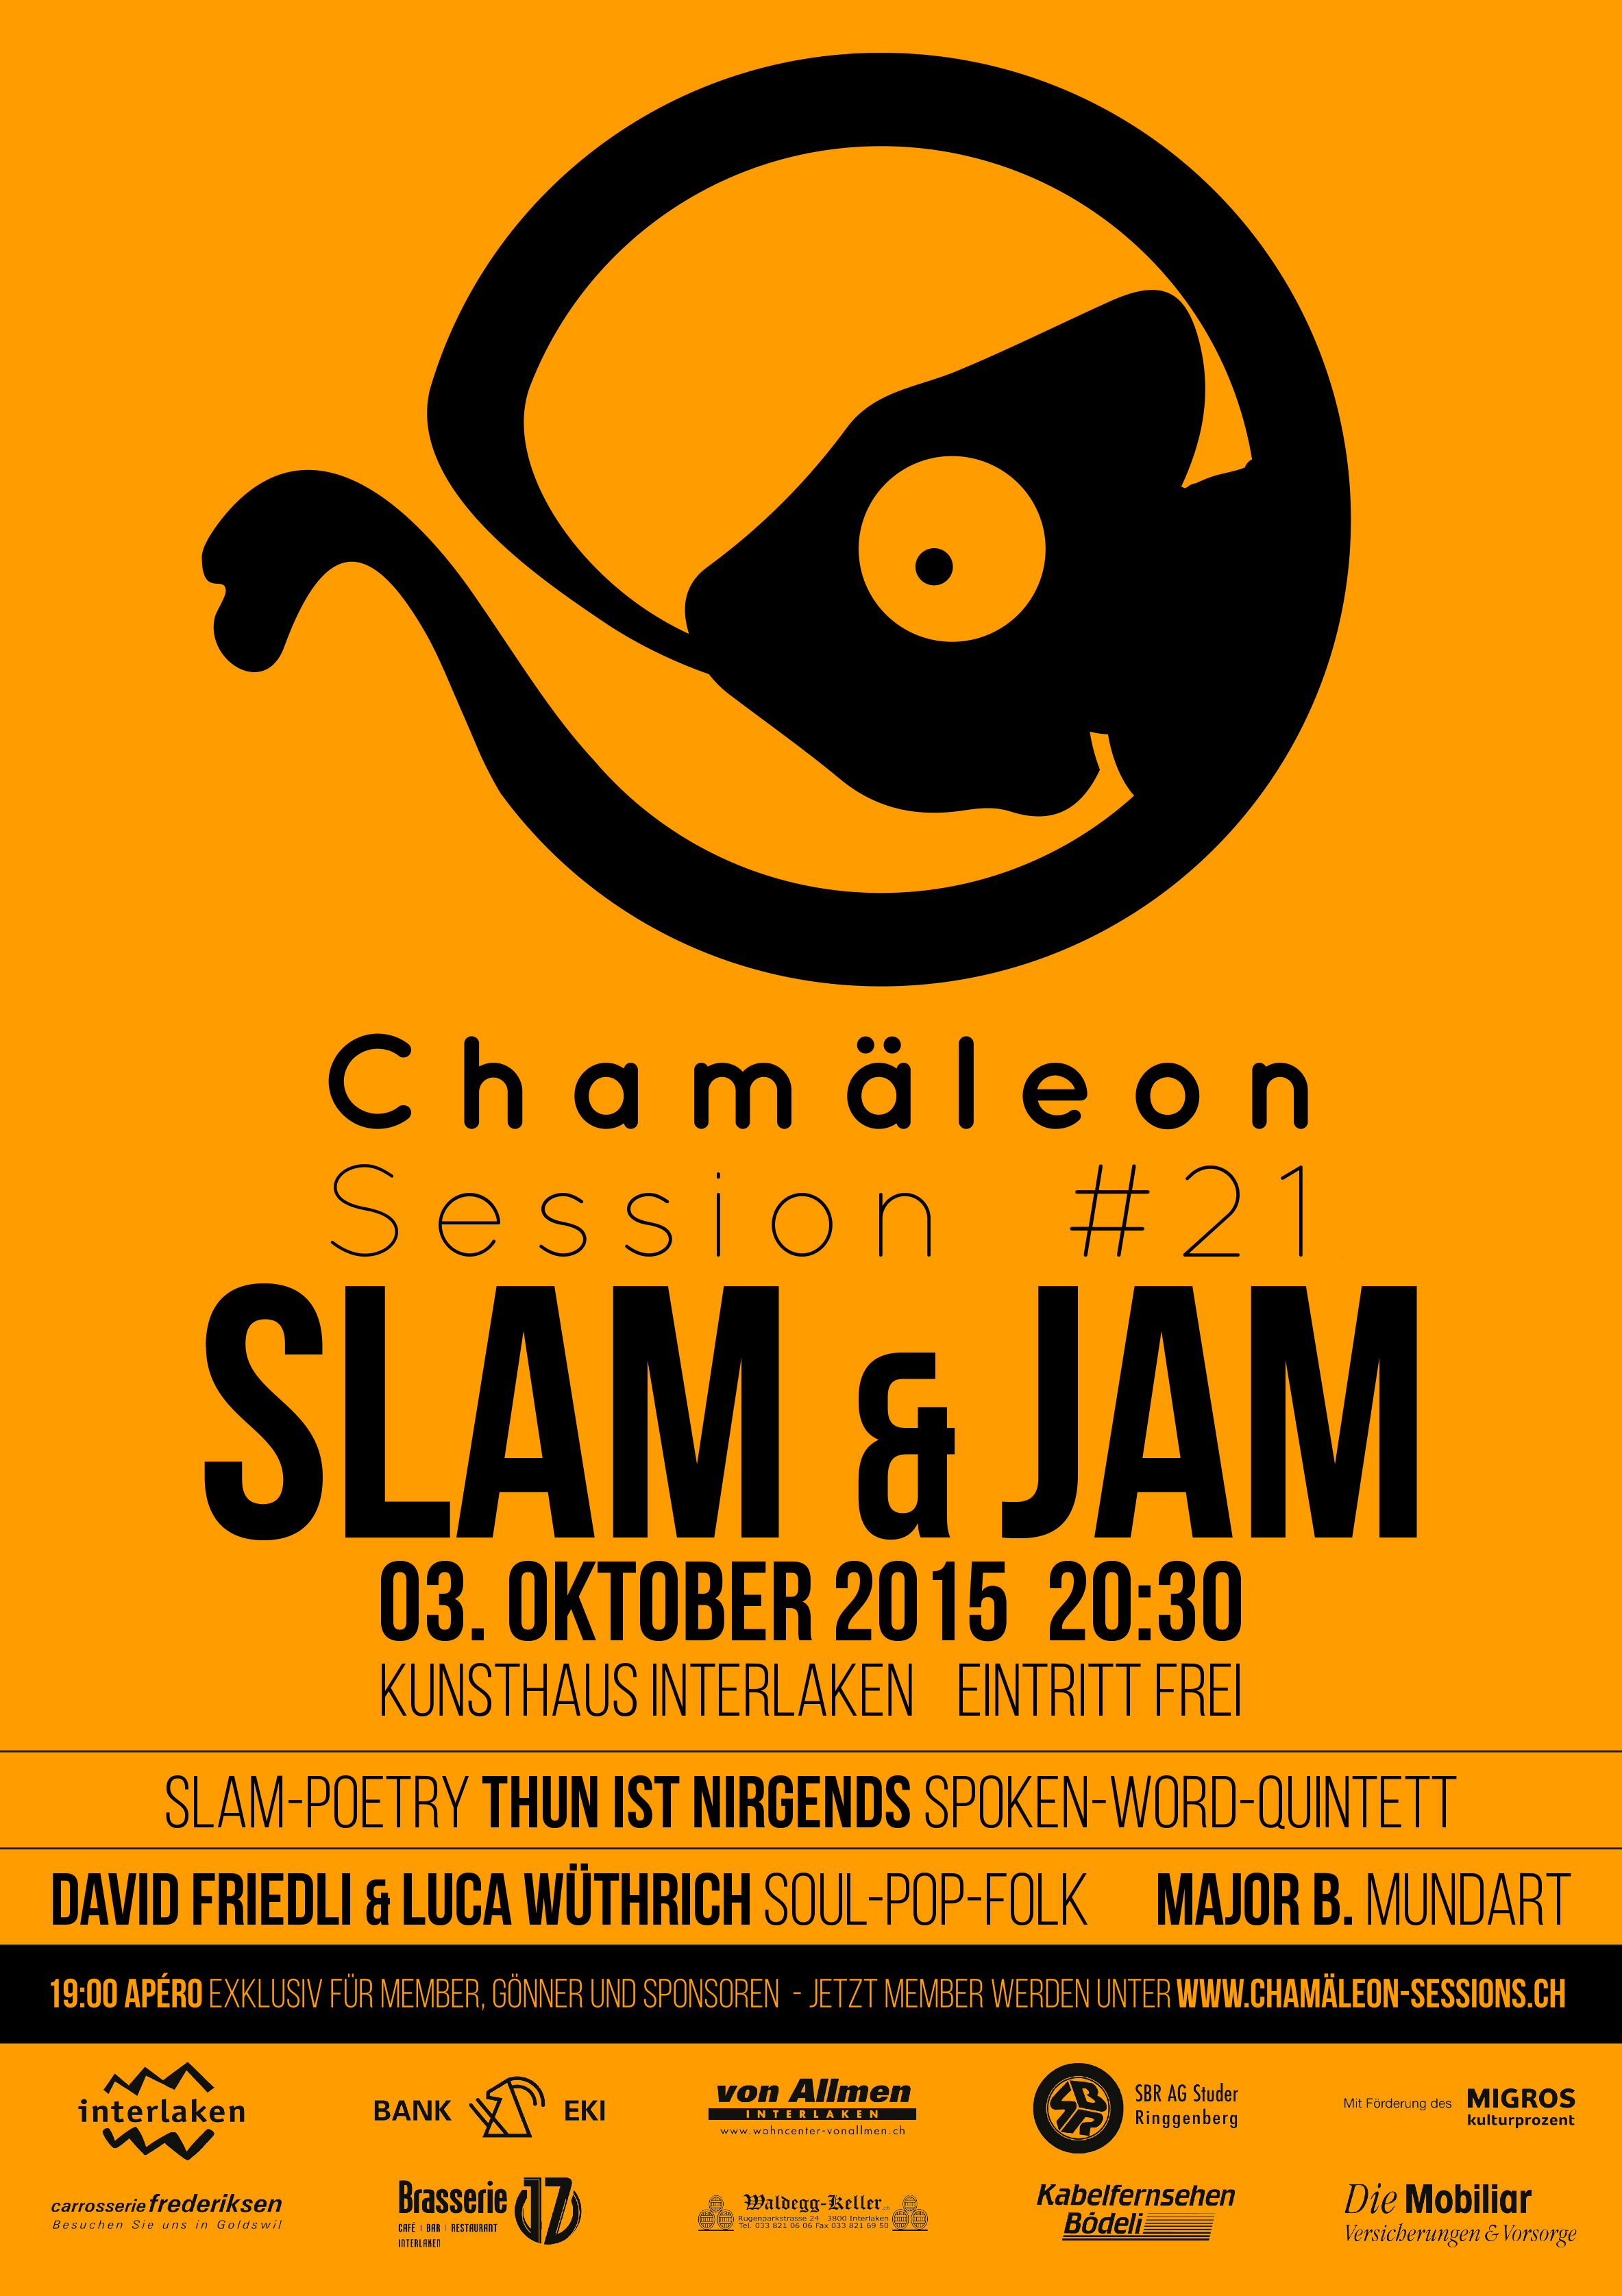 Plakat-Chamäleon-Session21-Slam-Jam